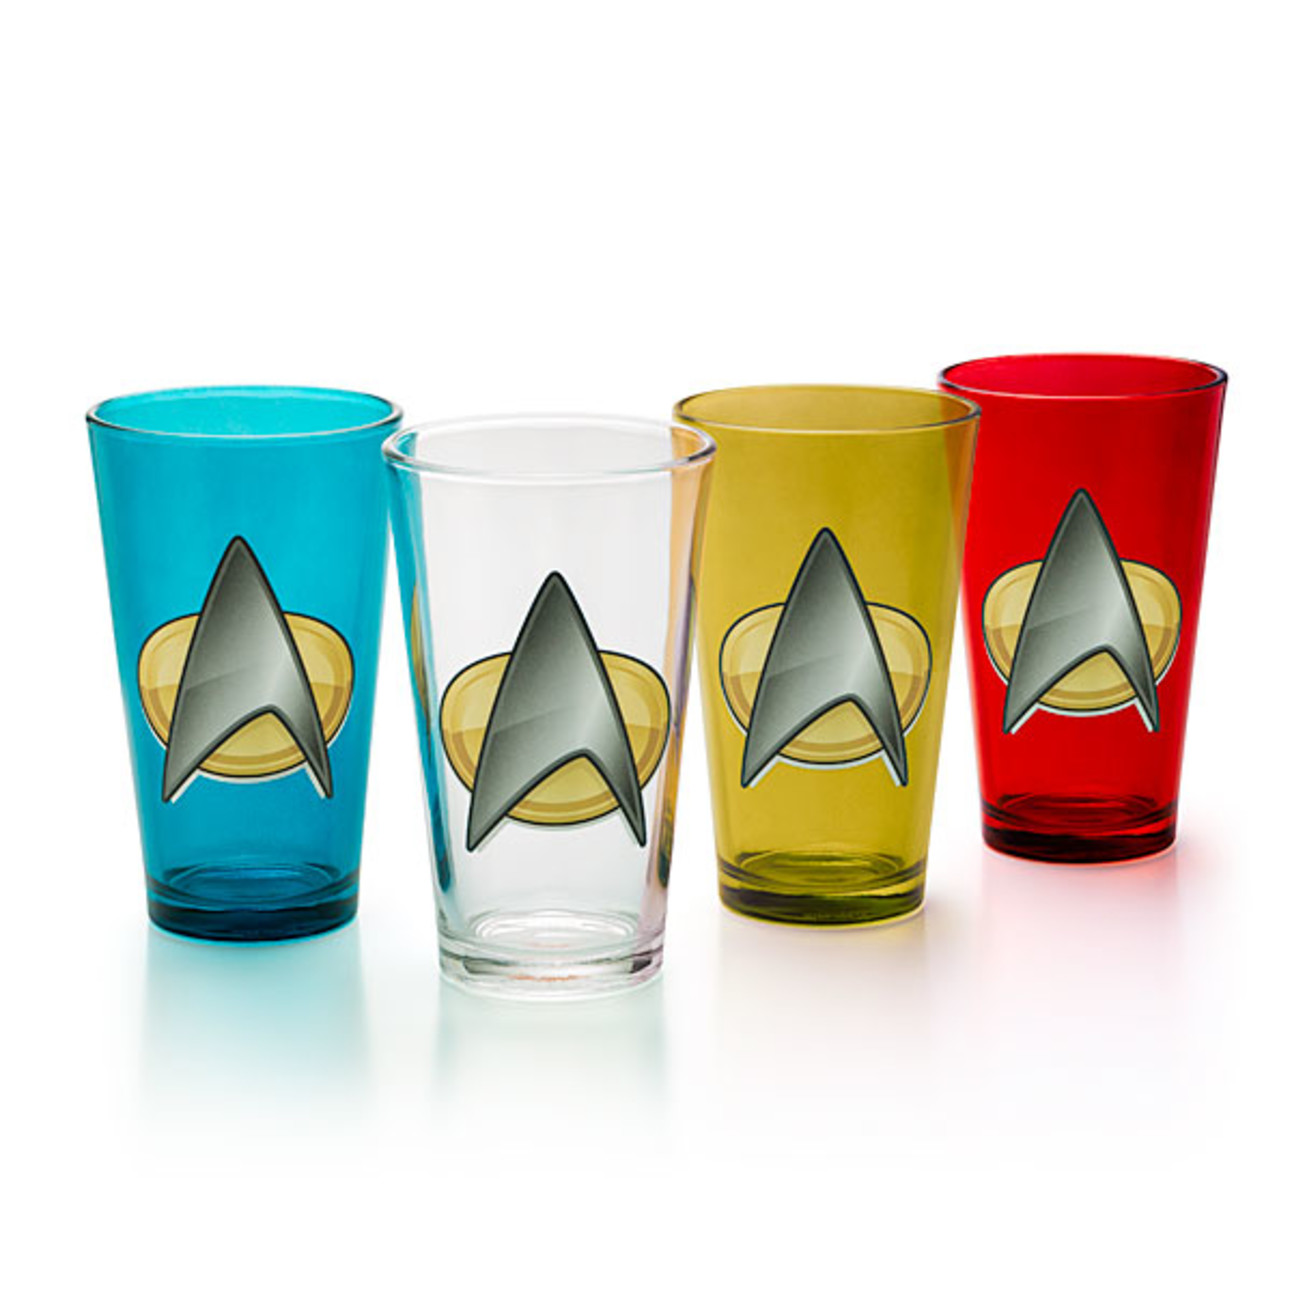 Star Trek TNG pint glass set